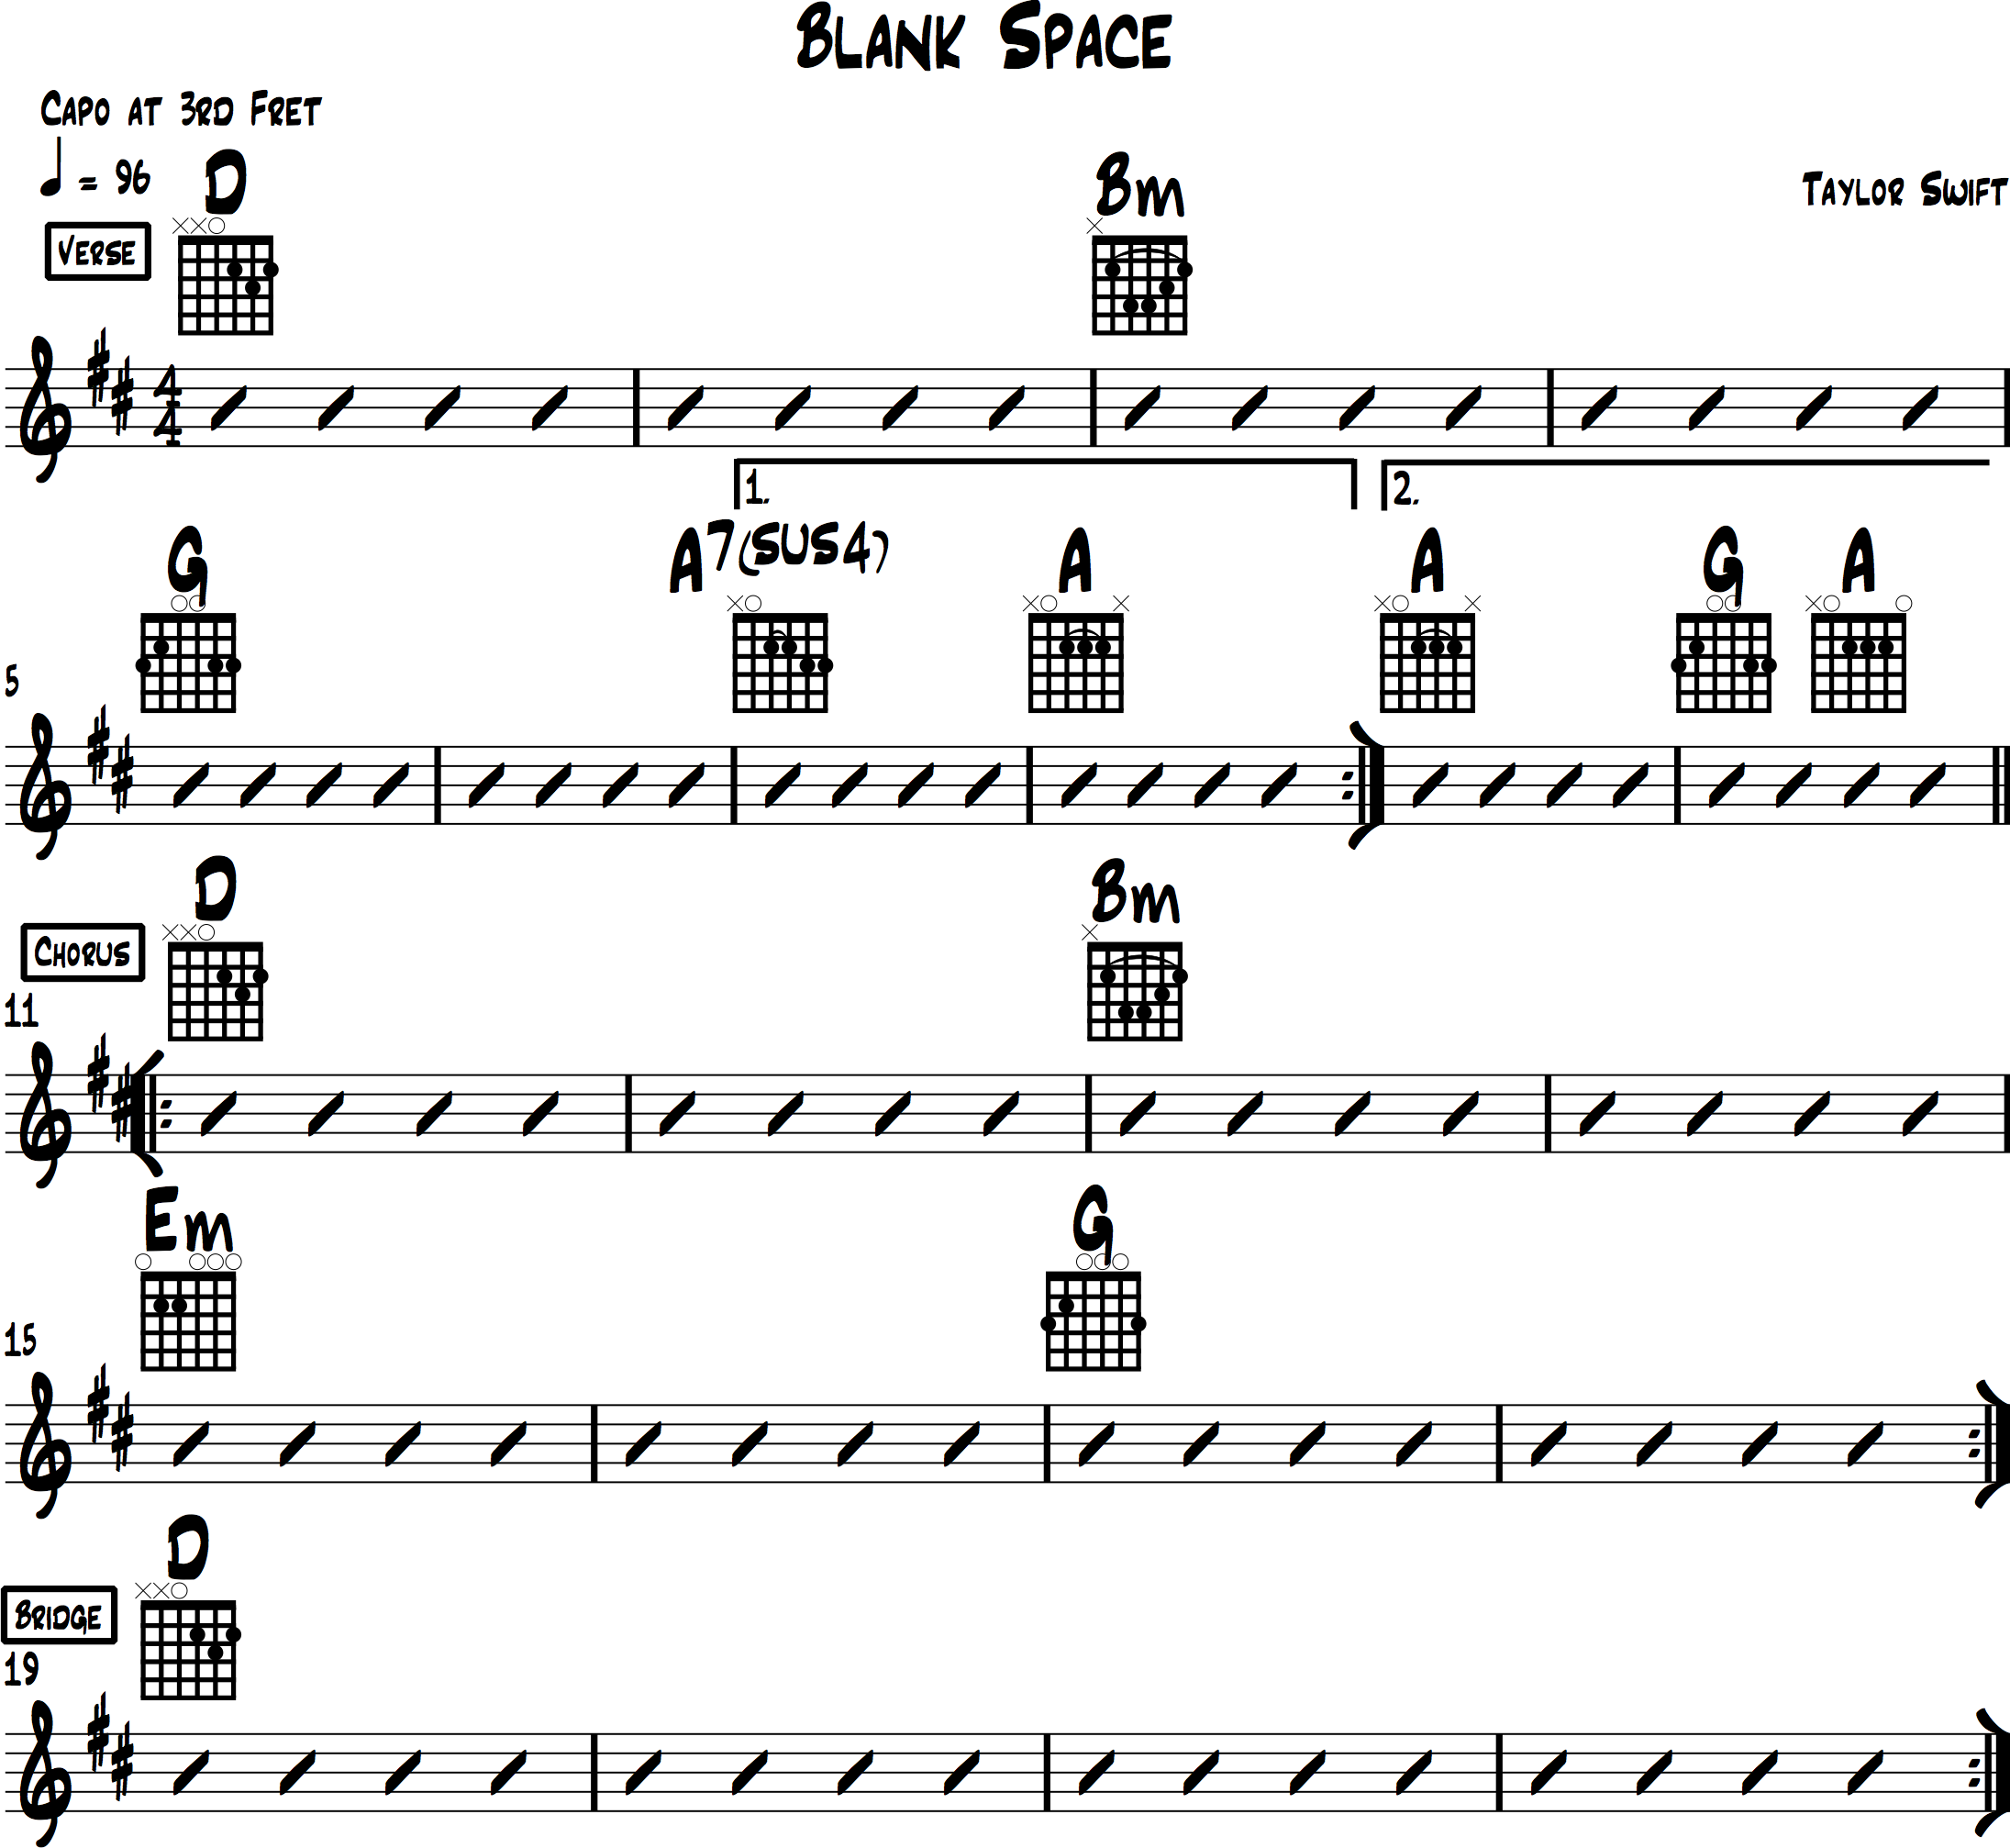 Blank Space Chord chart for guitar